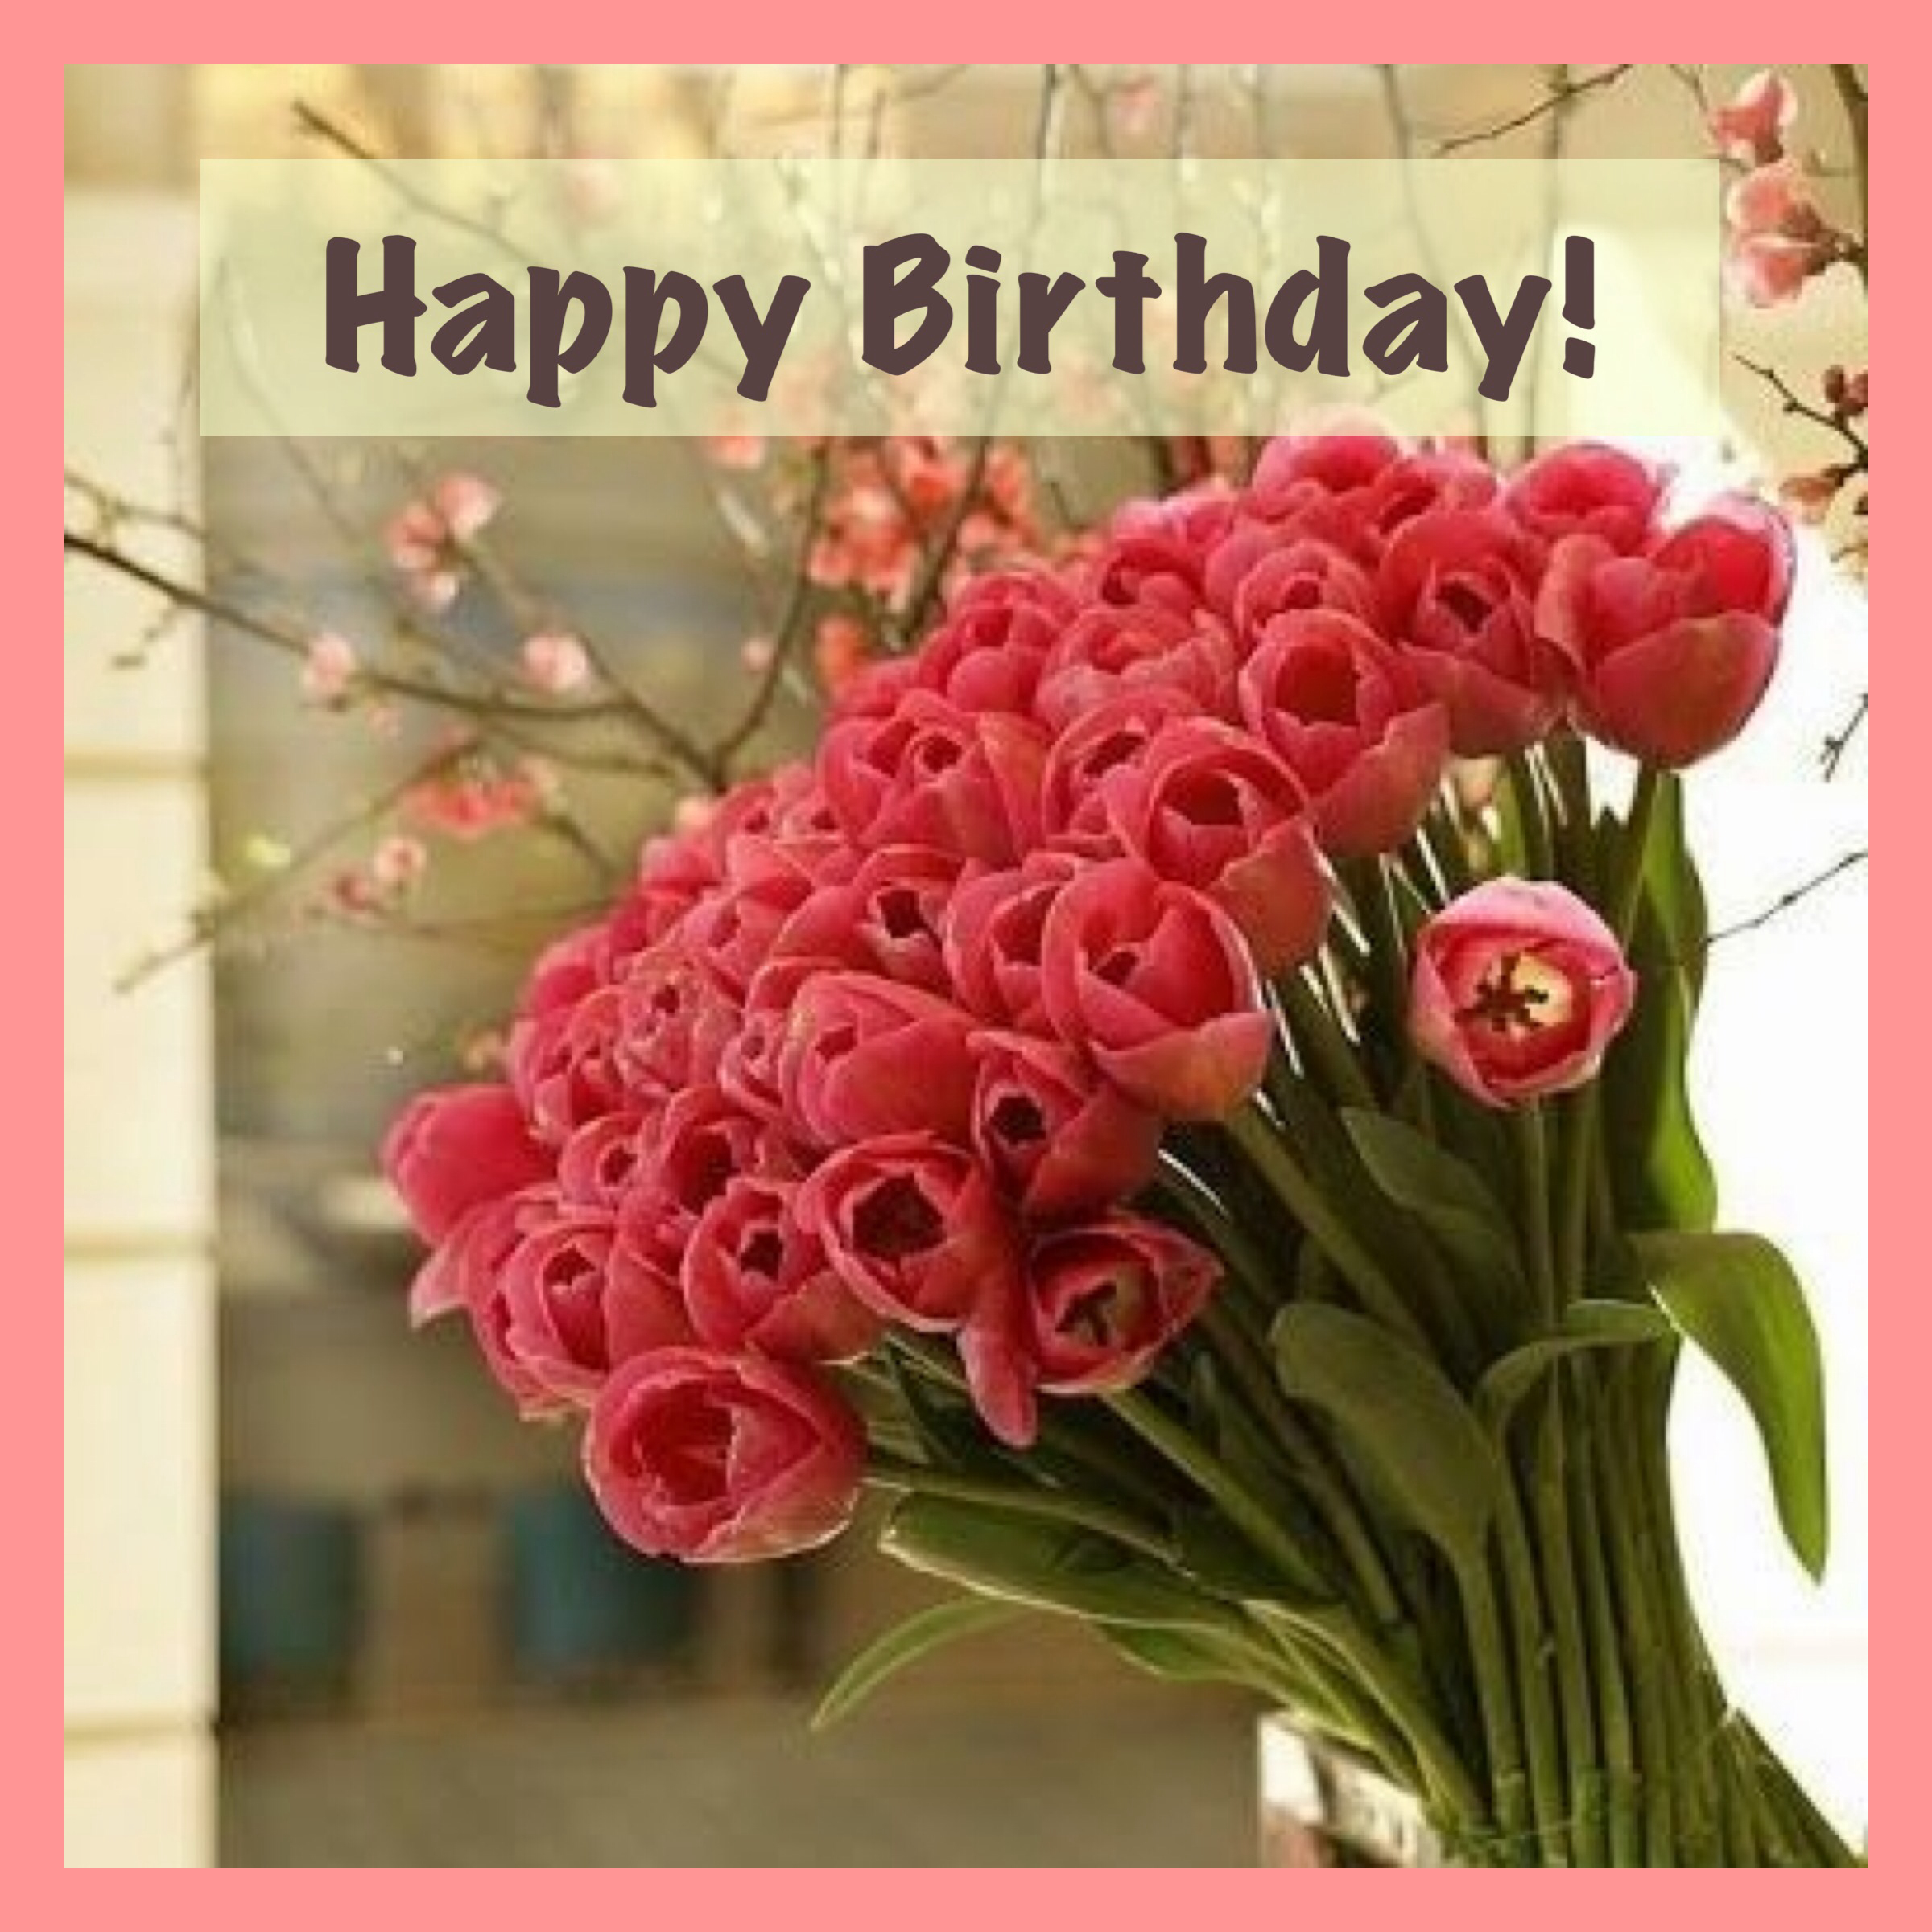 Free Birthday Flower Bouquet Images Flowers Healthy